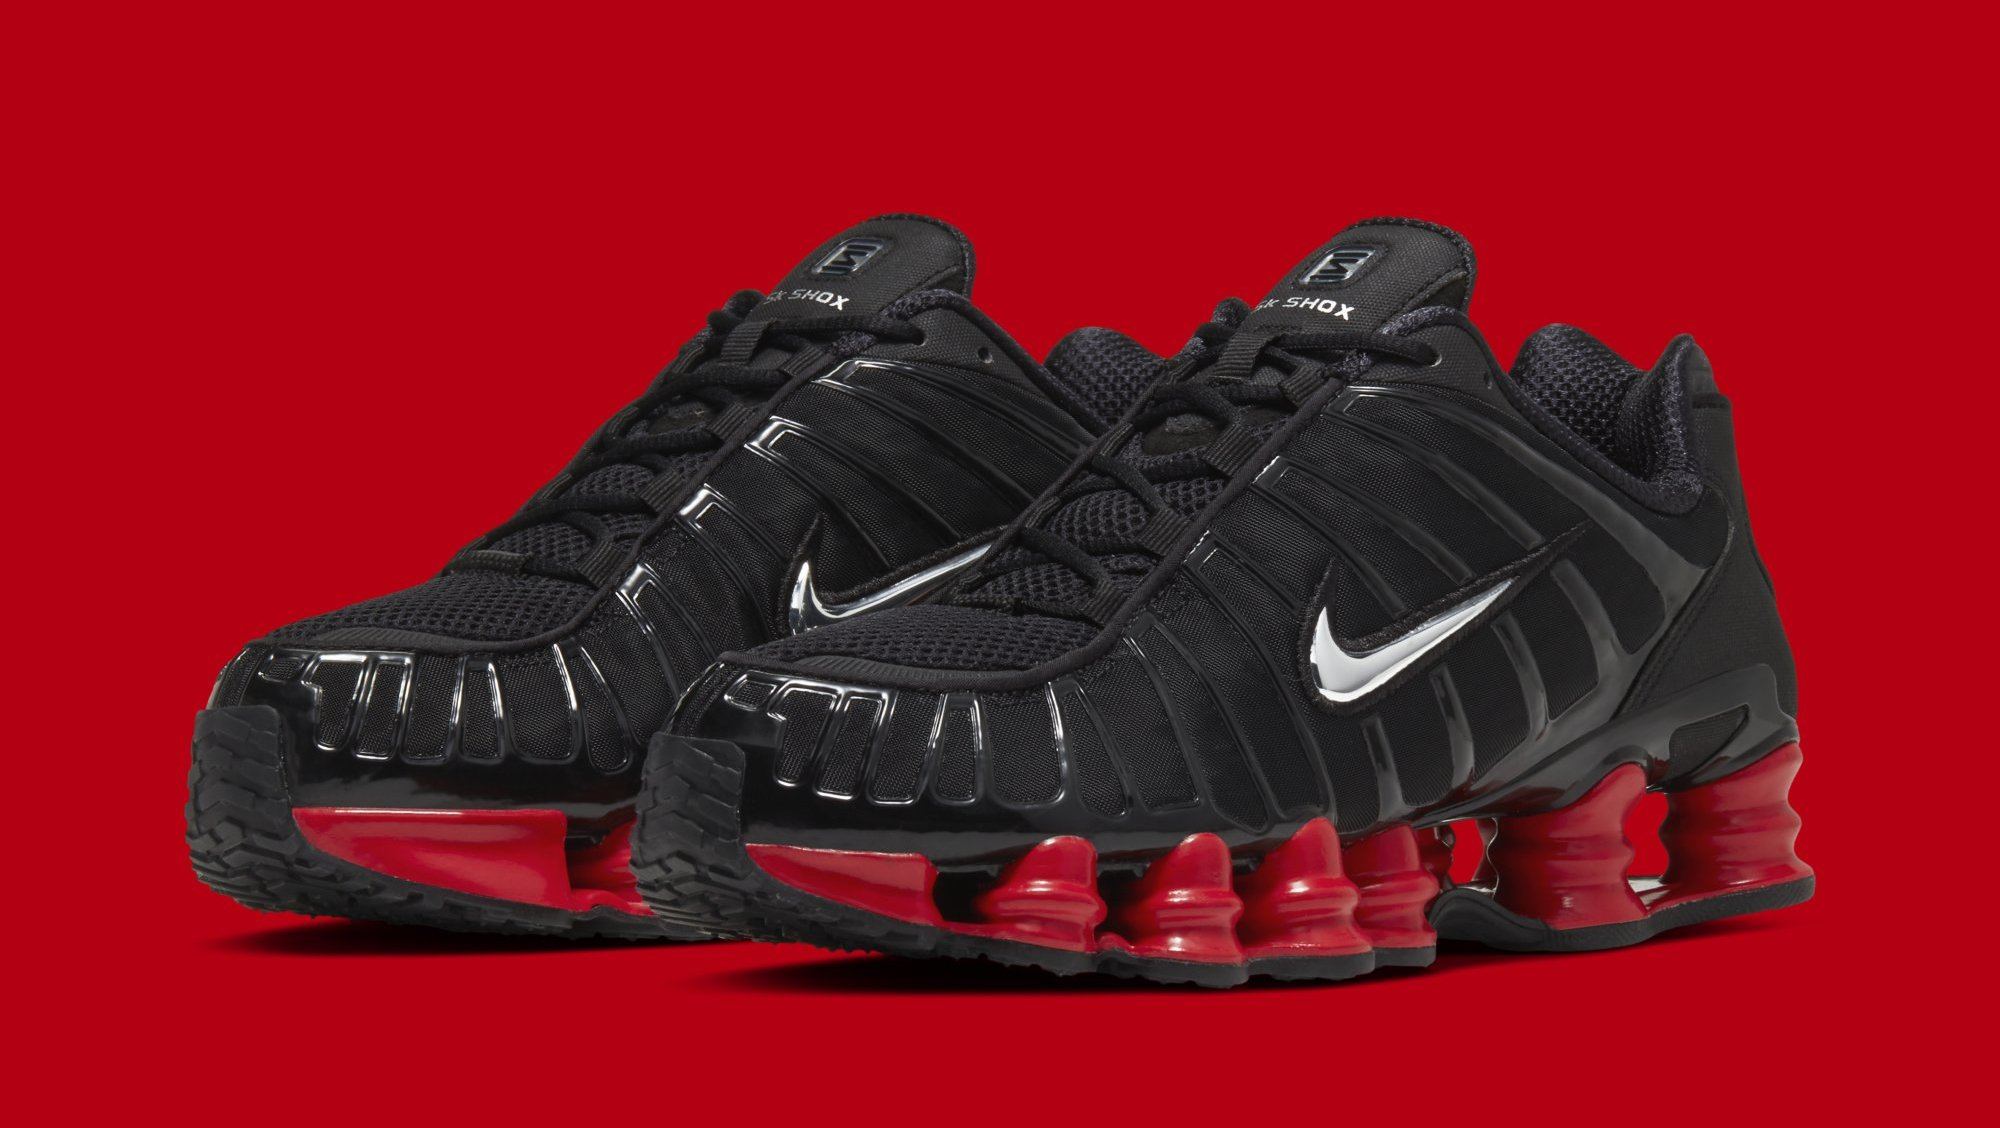 Skepta x Nike Shox TL 'Black/Black-University Red' Release ...